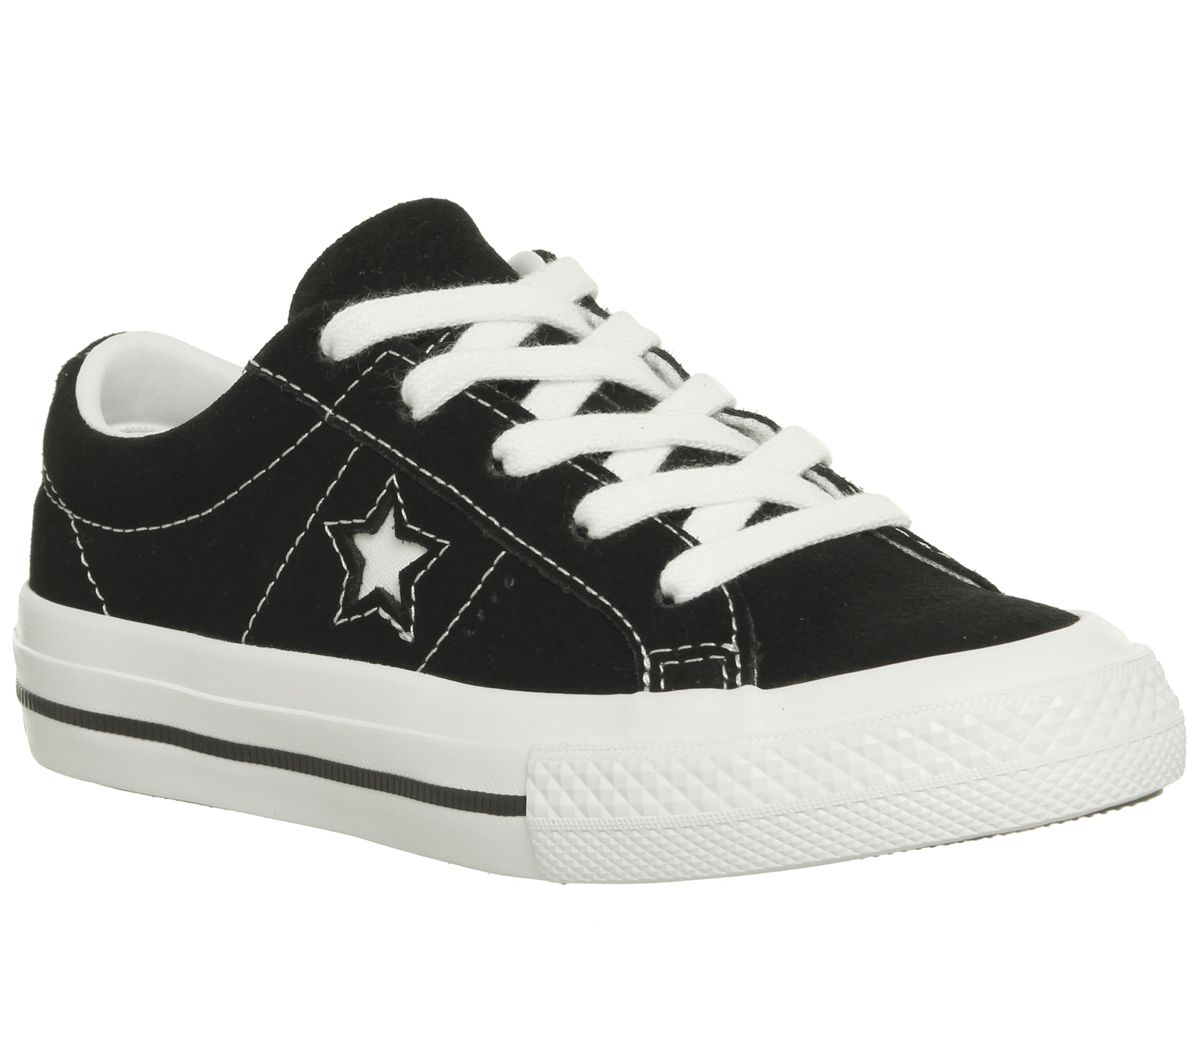 d5c12ba4c74a8b Converse One Star Youth Trainers Black White - Unisex